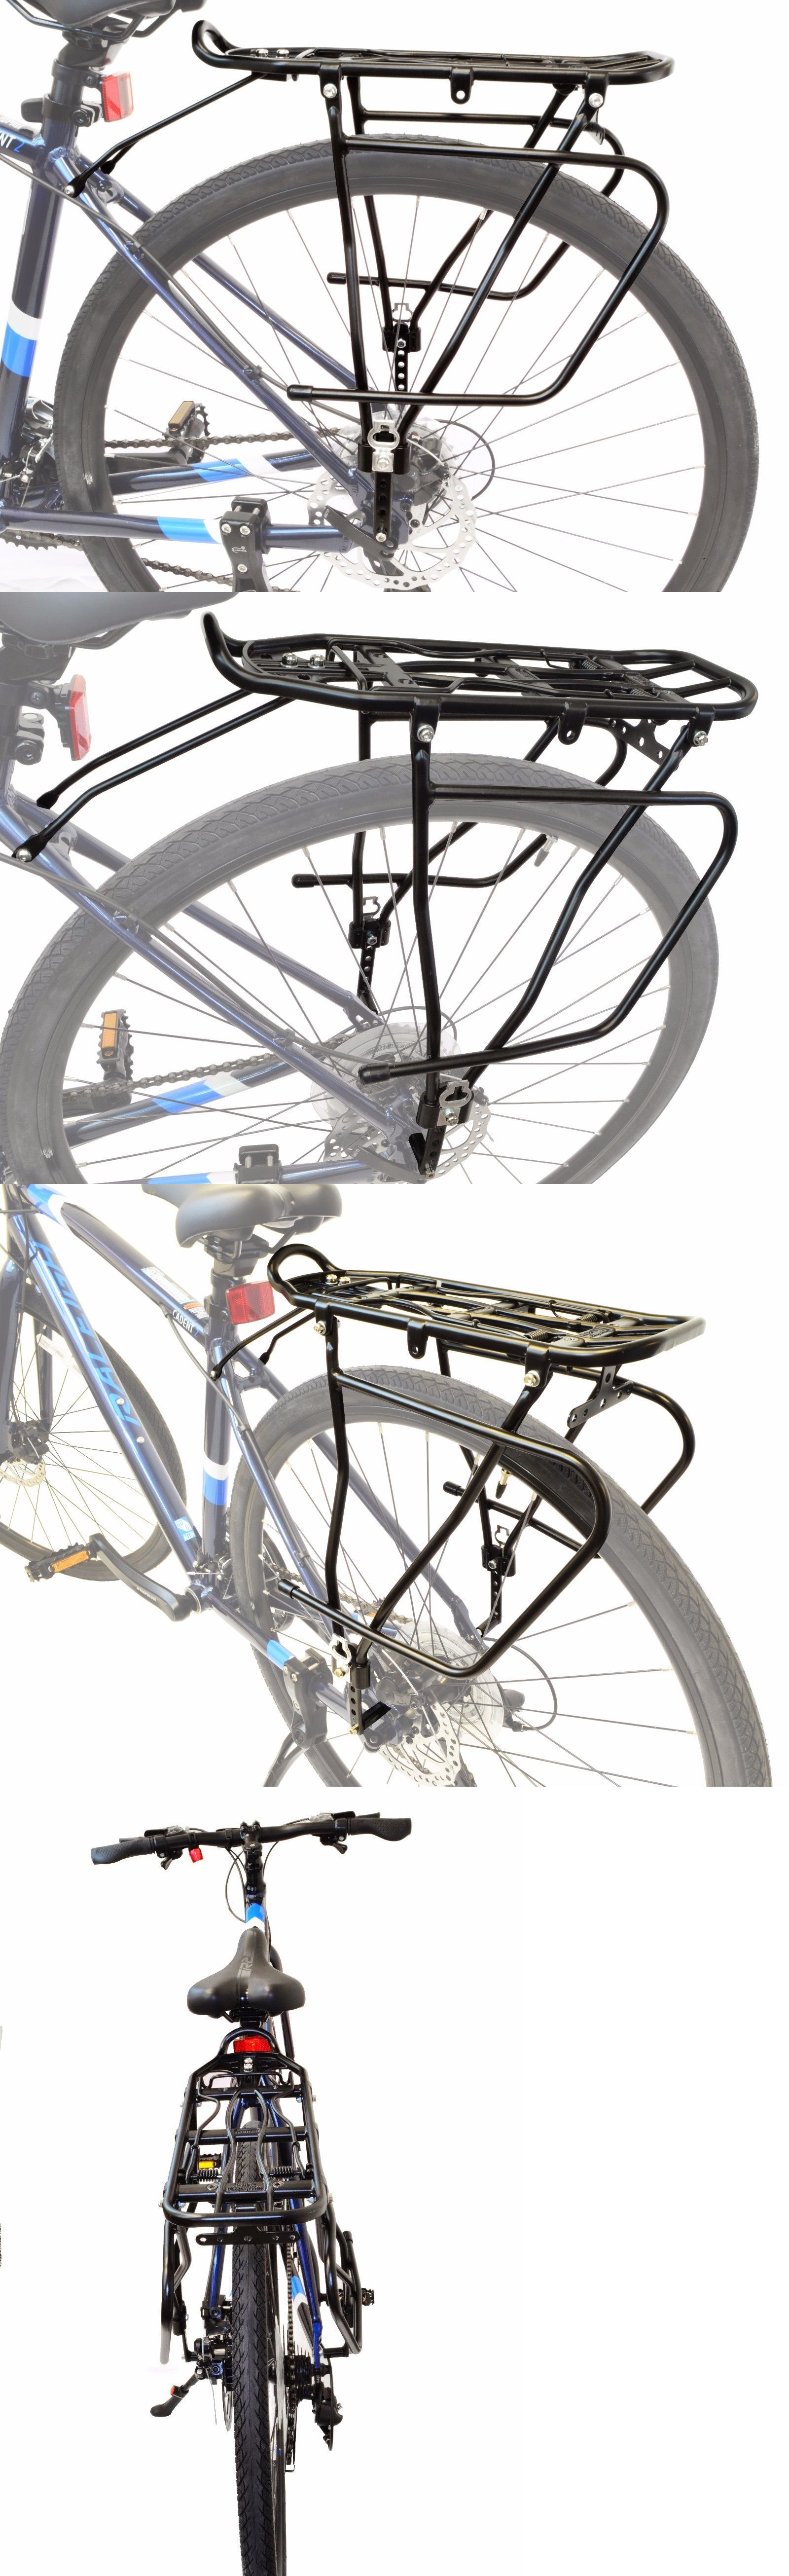 Carrier And Pannier Racks 177836 Lumintrail Adjustable Bicycle Rear Frame